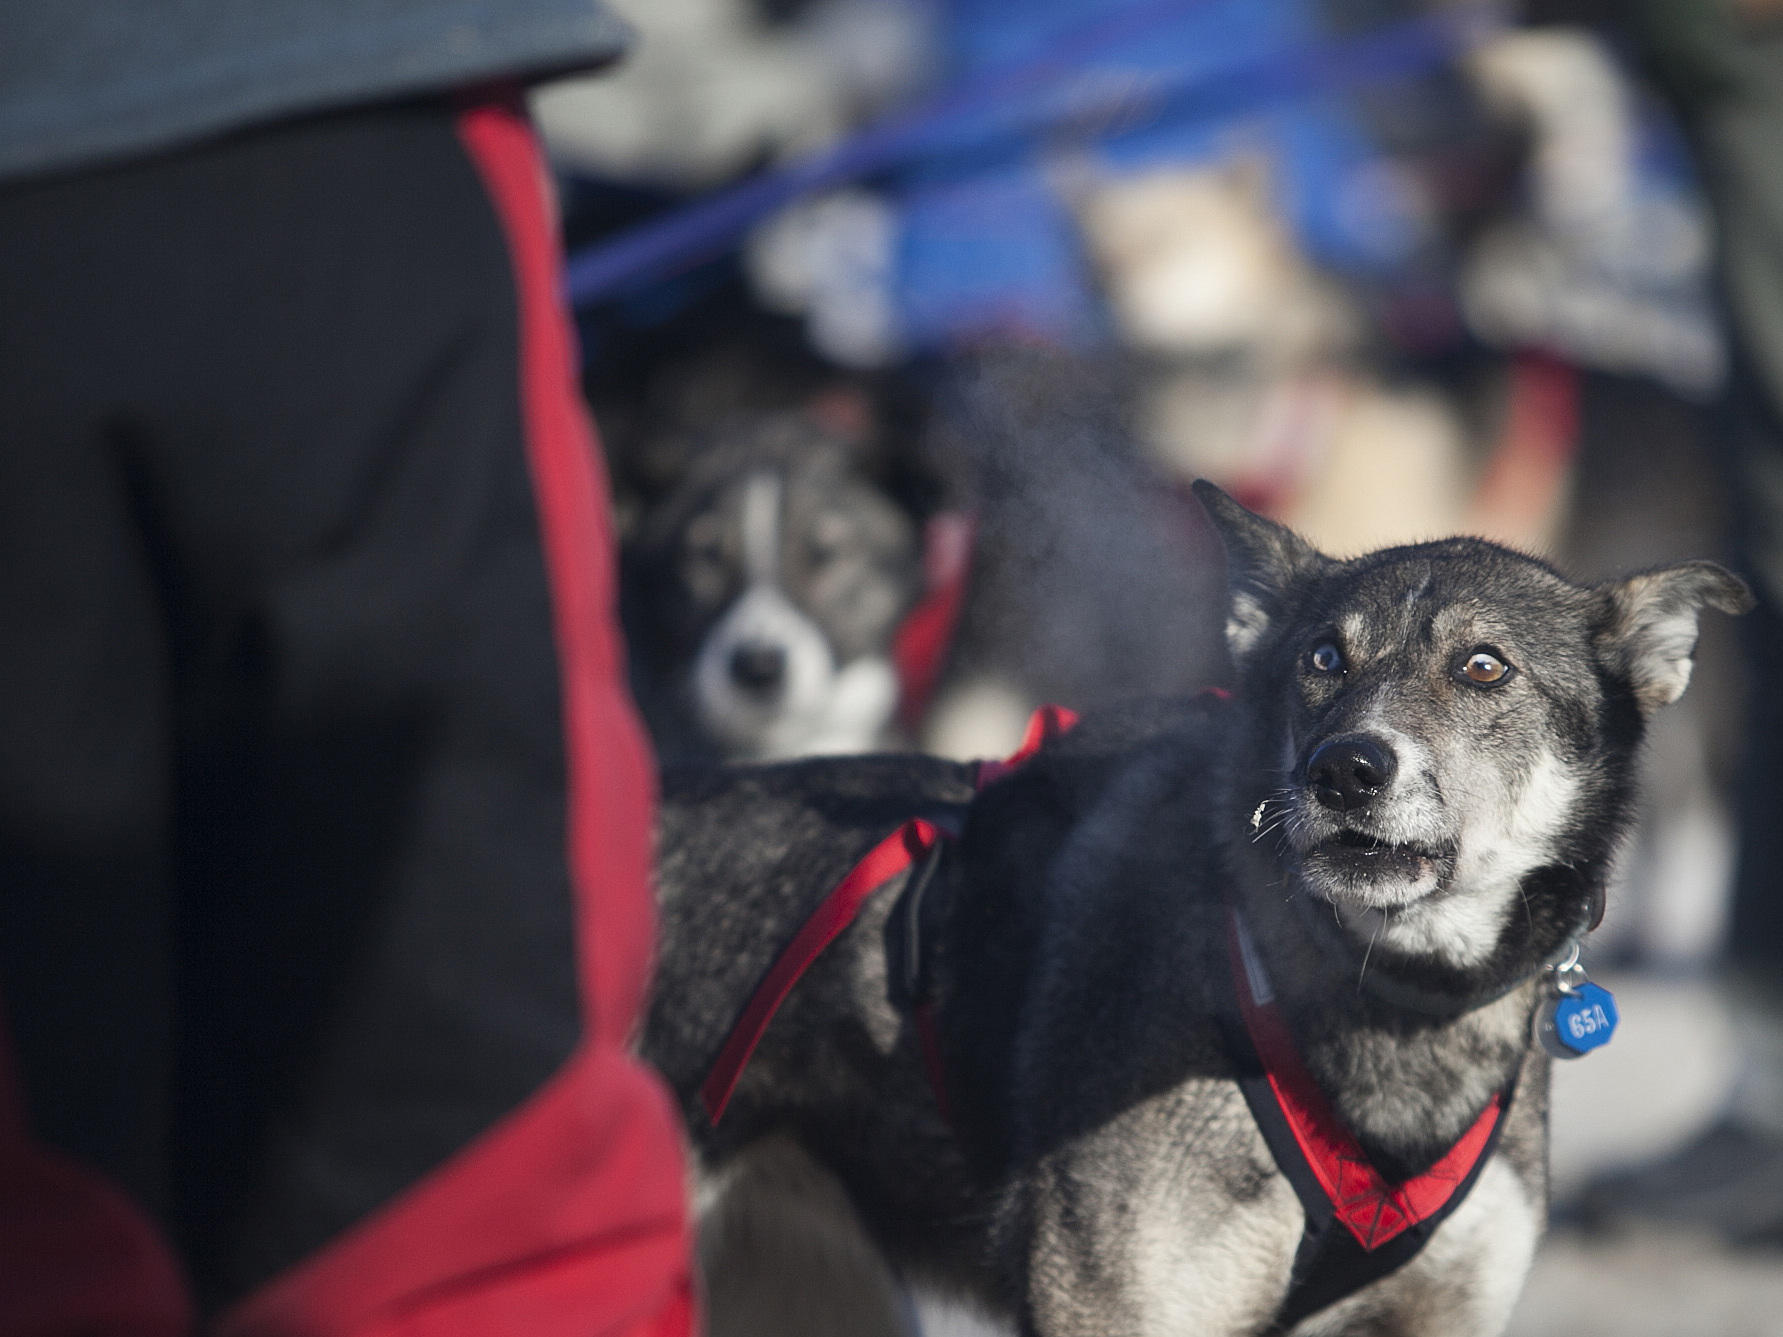 Sled dogs test positive for opioids — Iditarod first